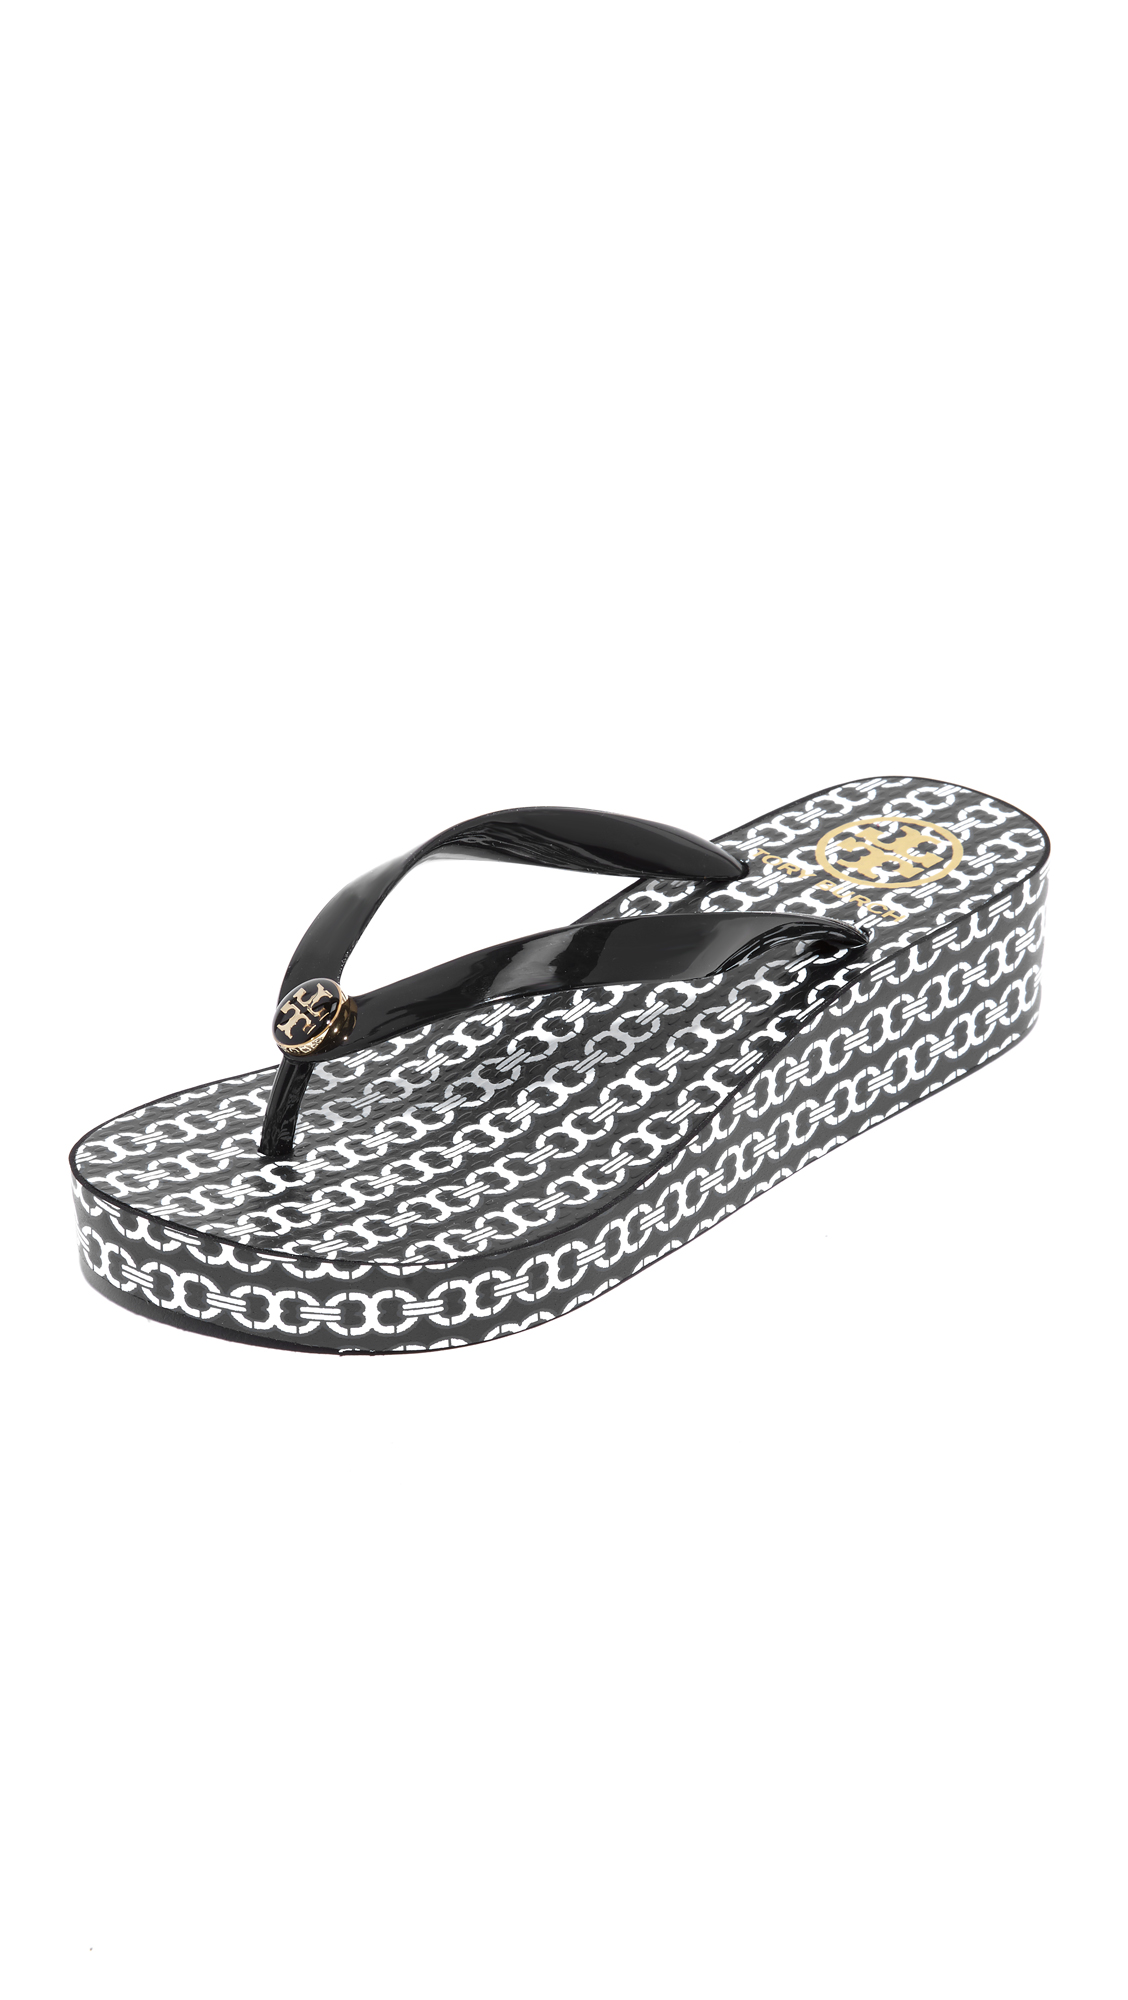 09972bec403f Tory Burch Wedge Flip Flops